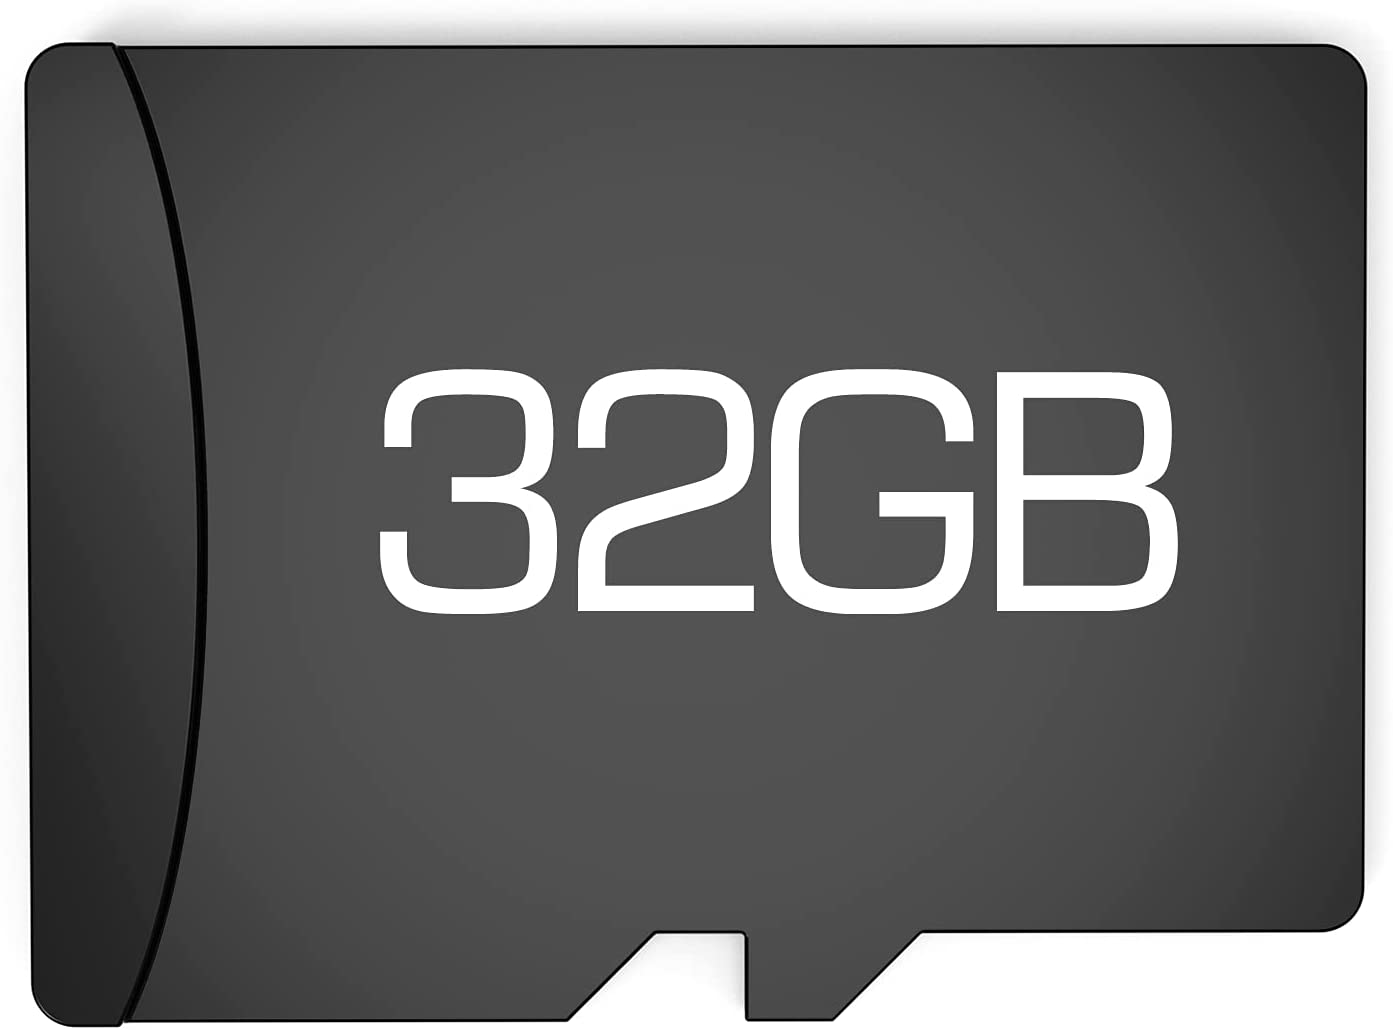 32GB SD Flash Card Memory Card Compatible for Security Camera, GoPro, Digital Camera, Smart Mobile Device Storage Phone, Tablet, Drone